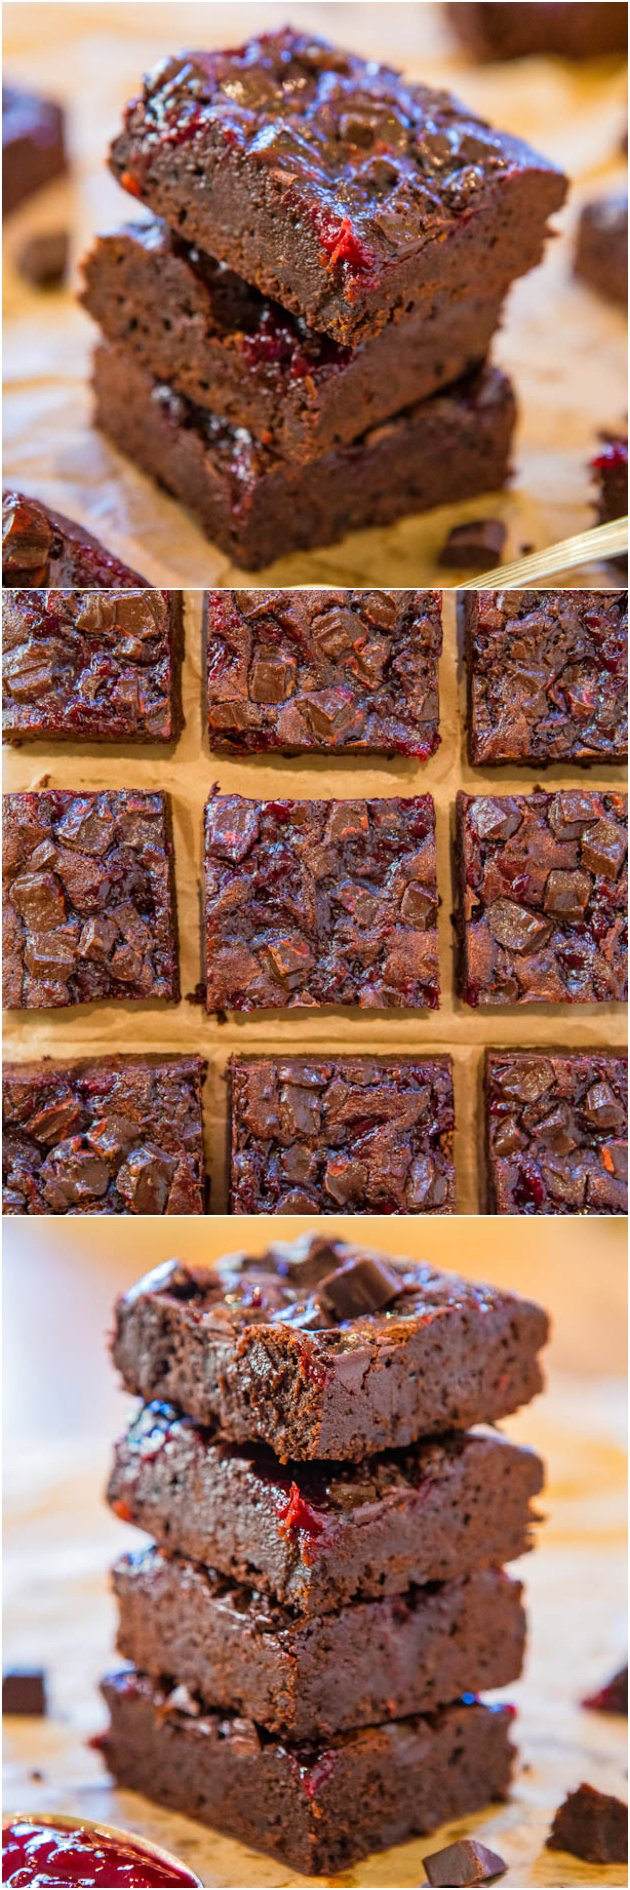 Chocolate Cherry Chocolate Chunk Fudgy Brownies - Scratch brownies as ...